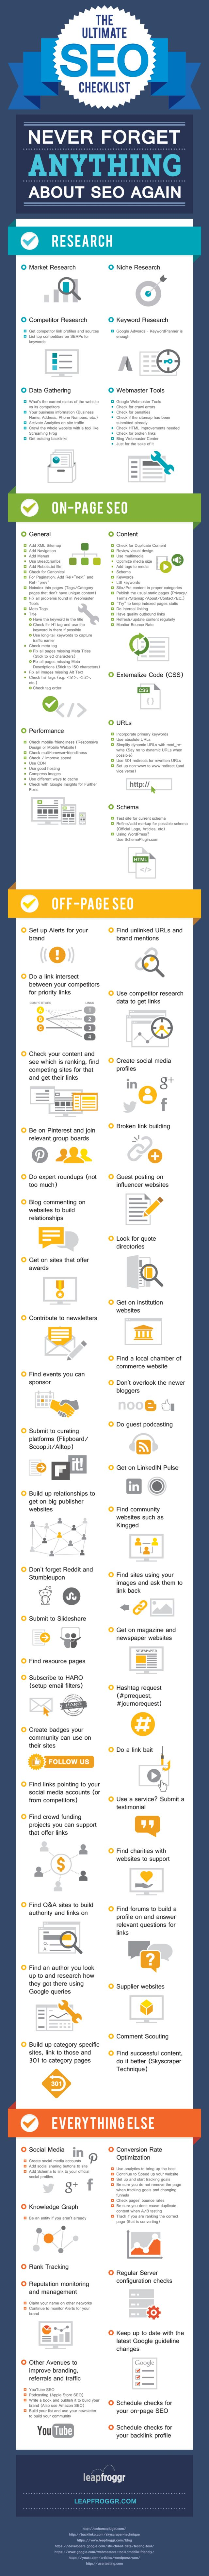 The Only SEO Checklist You'll Ever Need 50+ Steps to Google Success